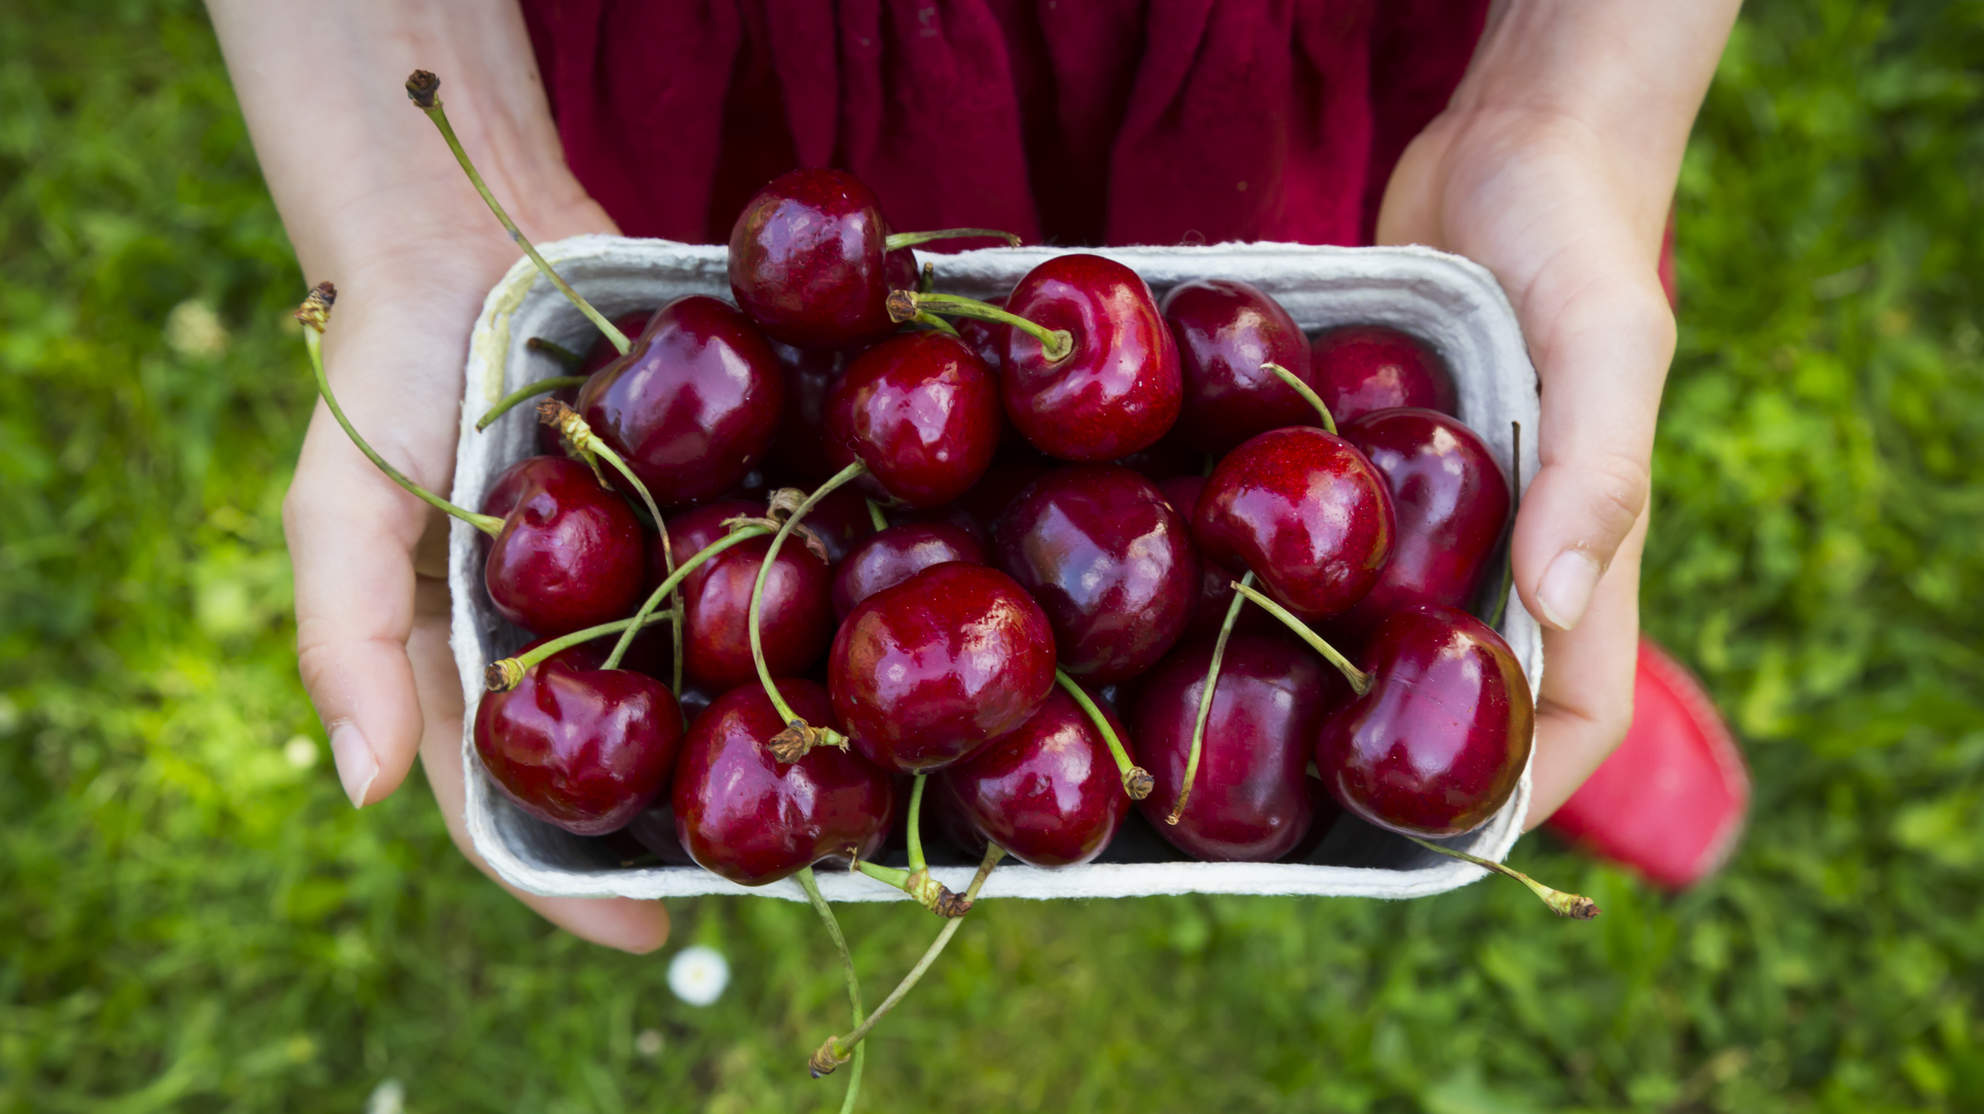 Looking for fresh local local cherries? - Click on image for farms & U-Pick